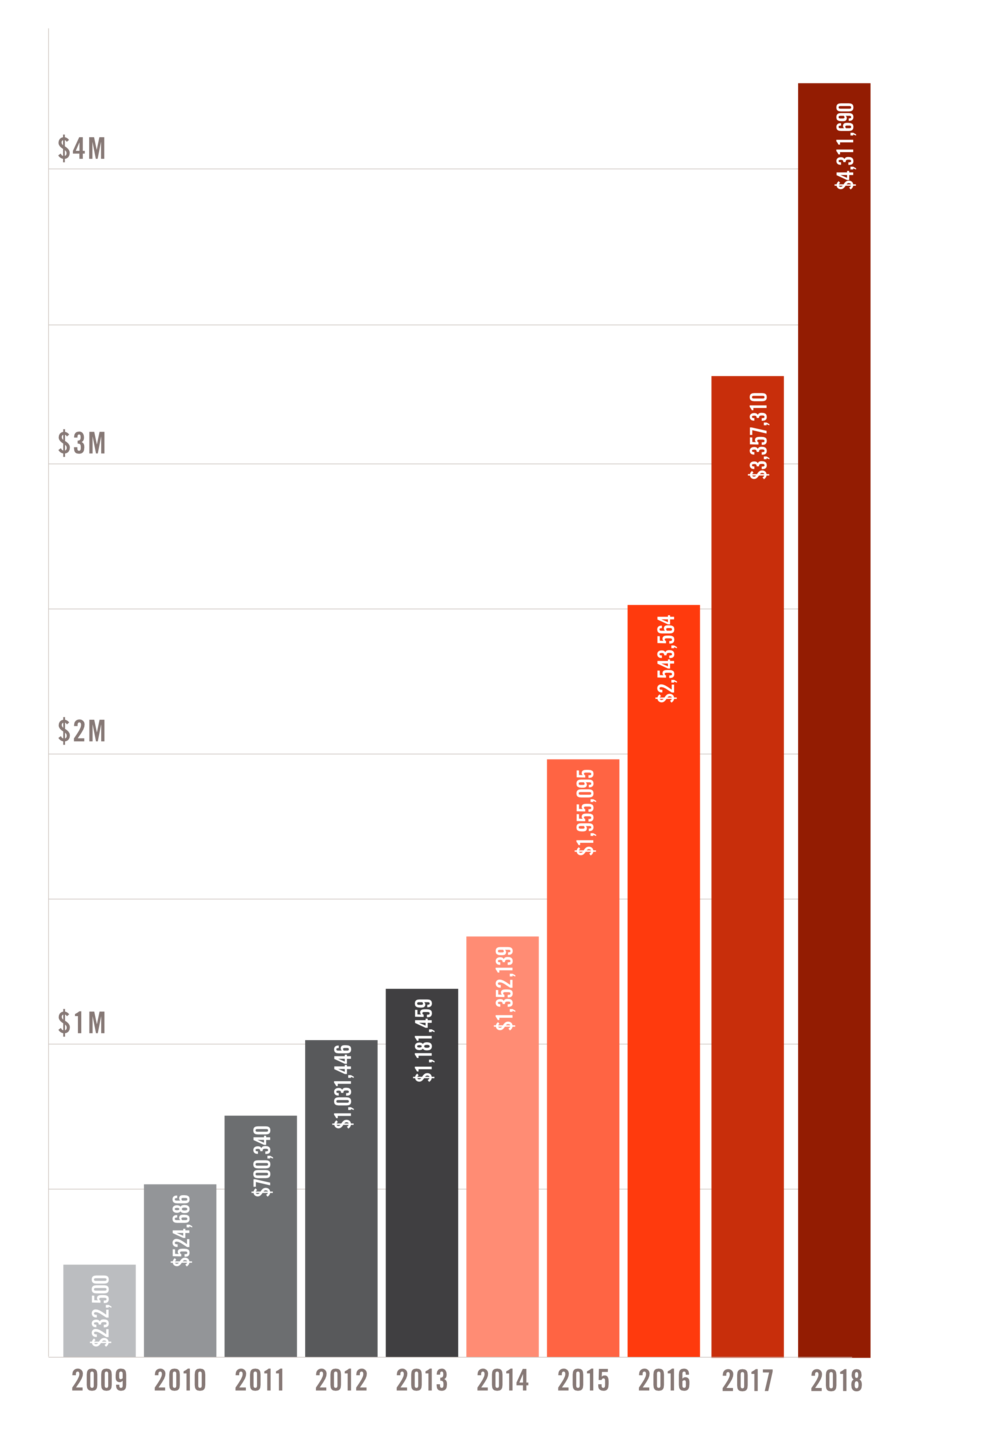 growth chart editable.png